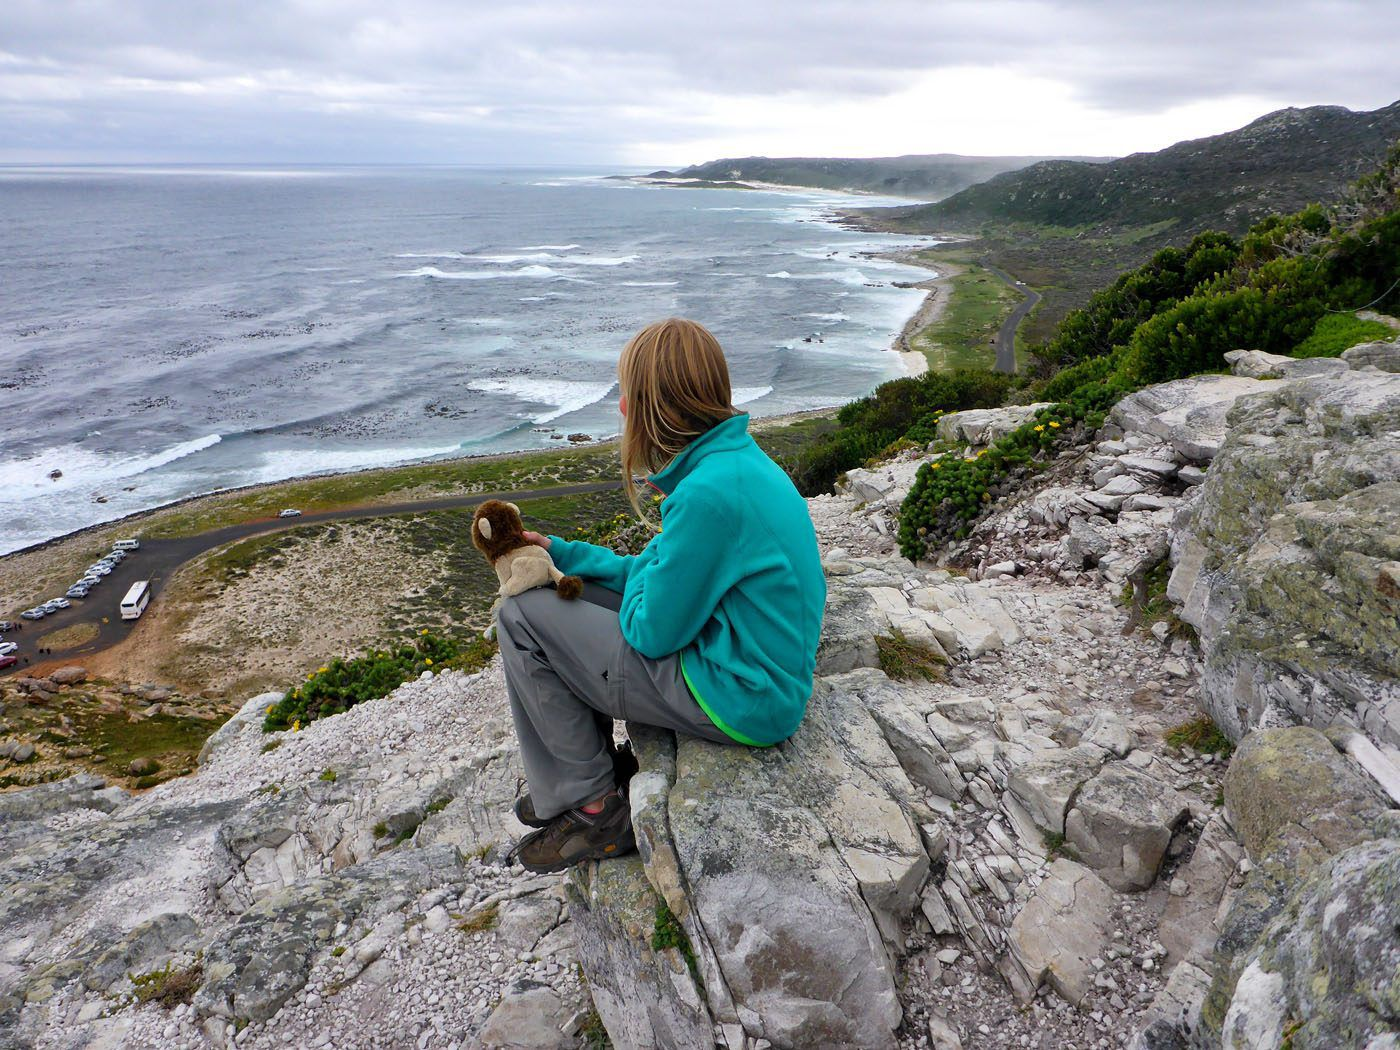 Kara's View of the Cape of Good Hope